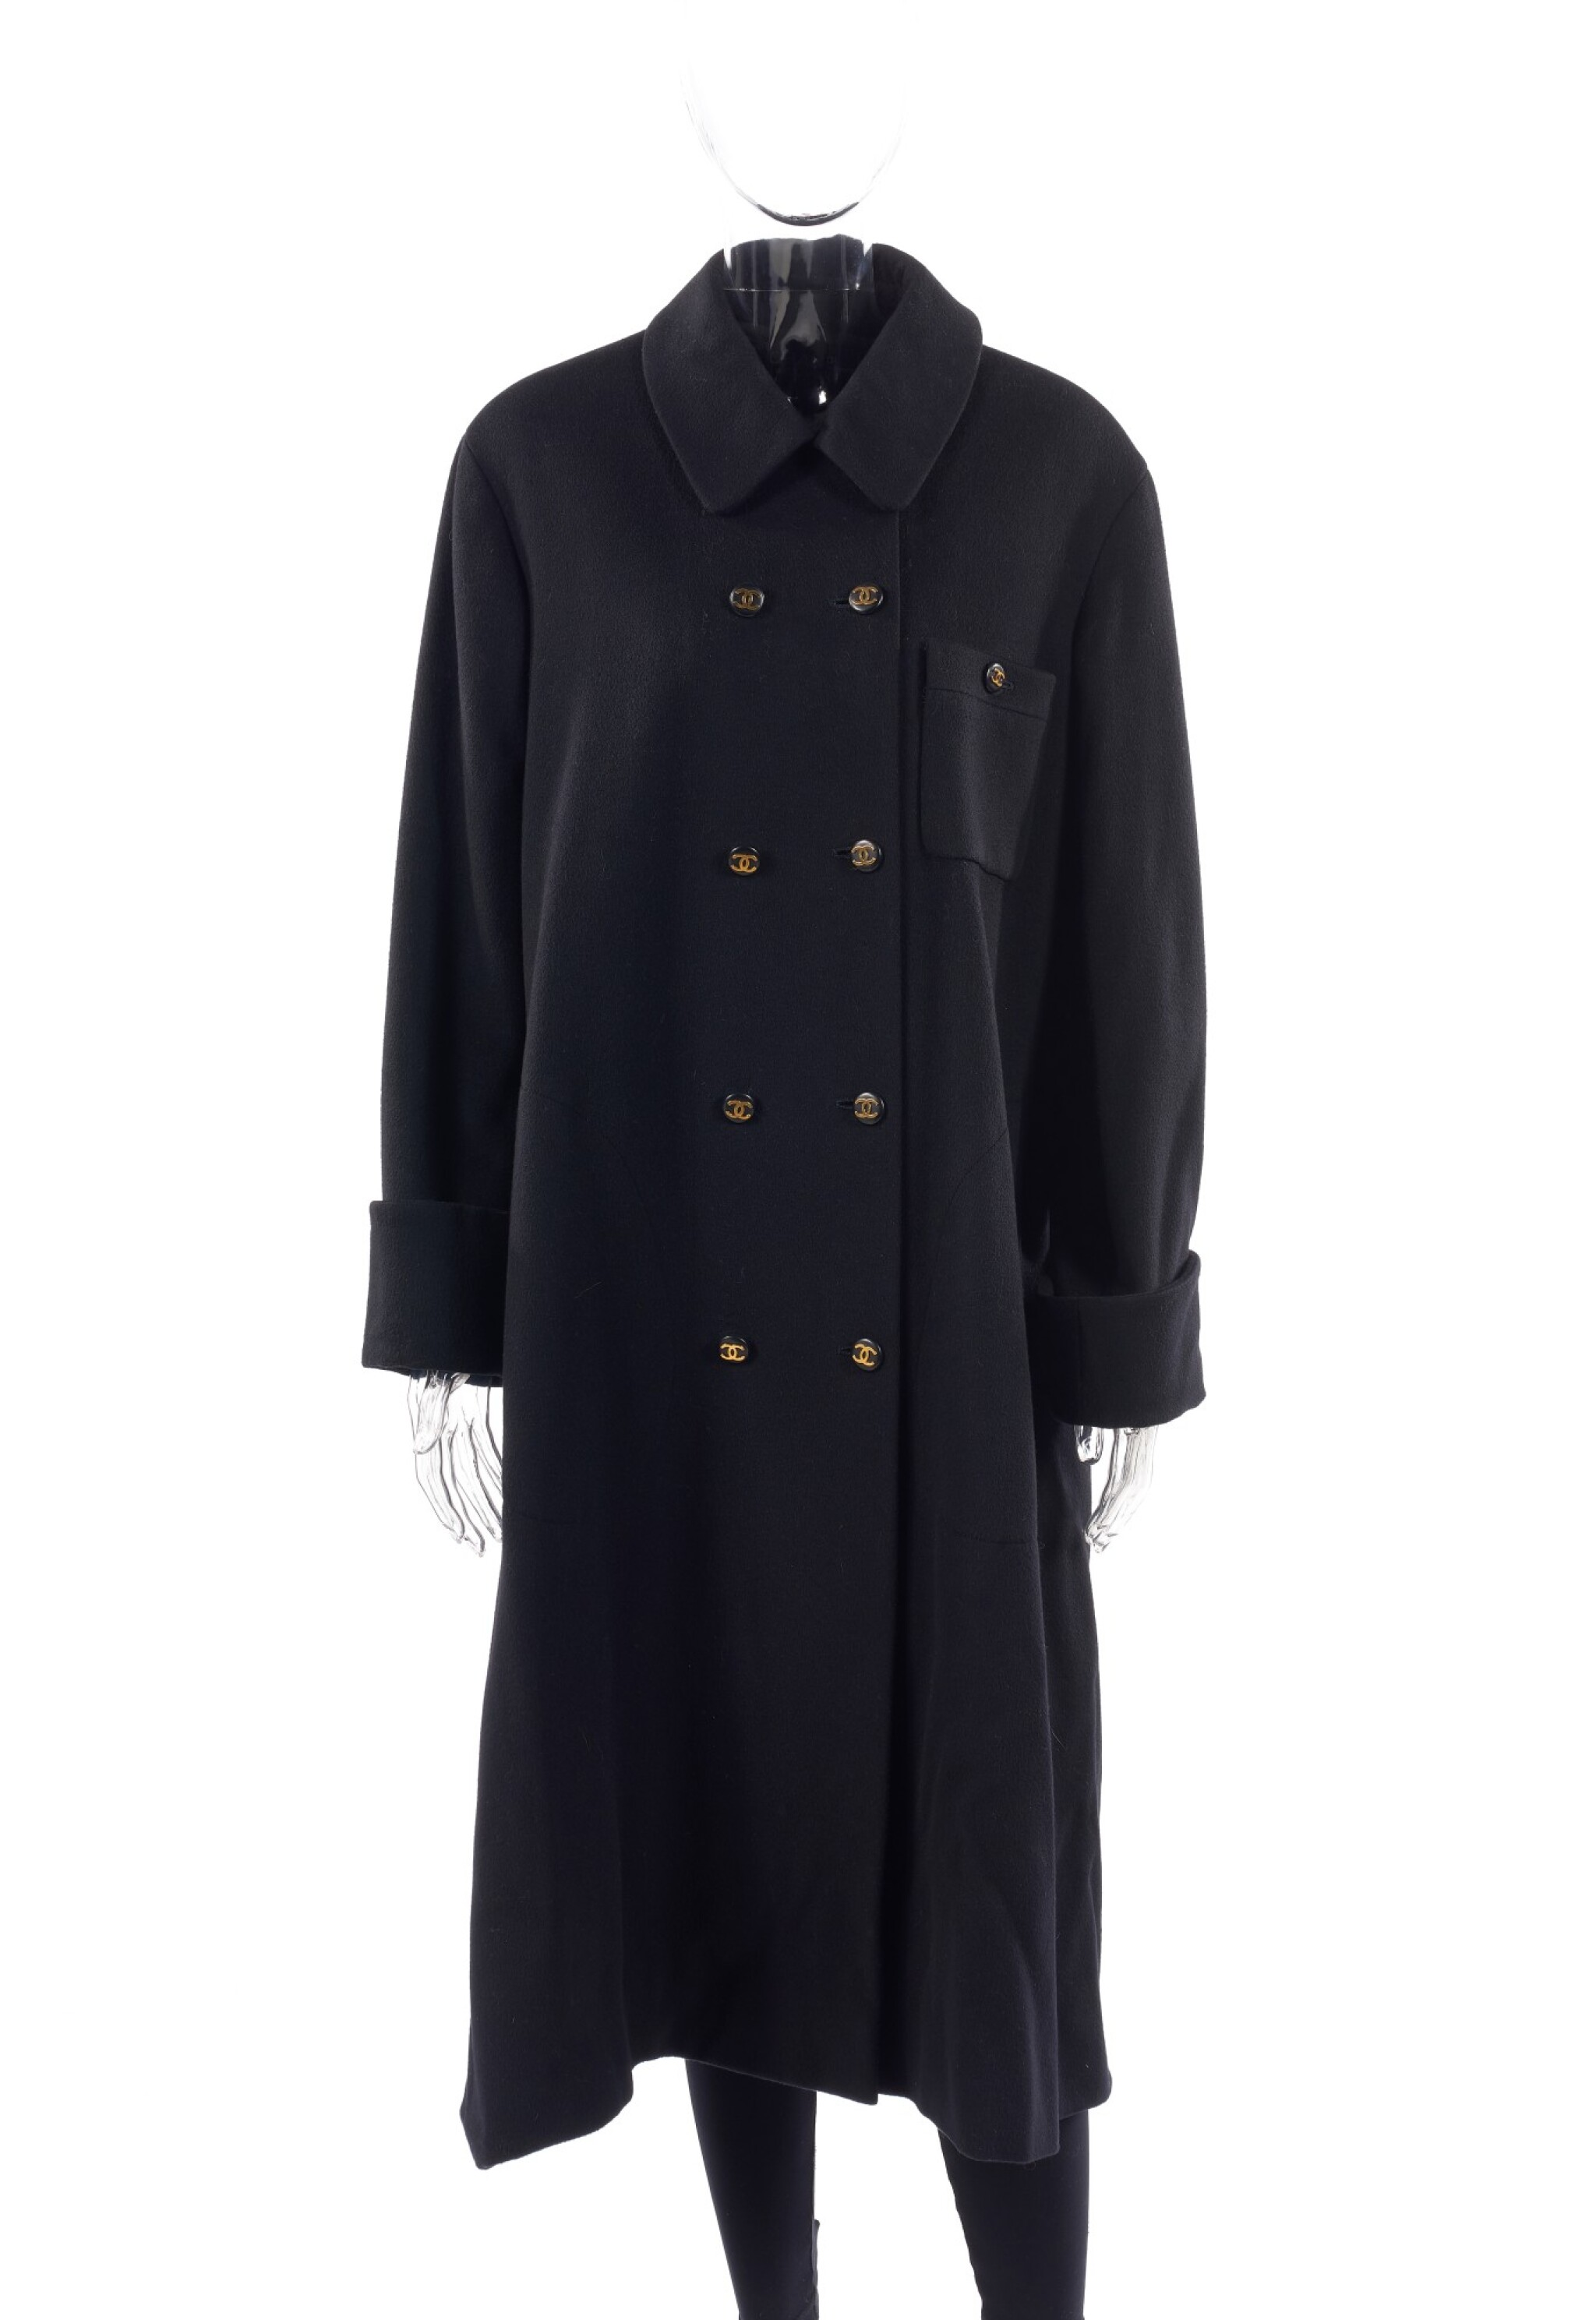 BLACK COAT, CHANEL